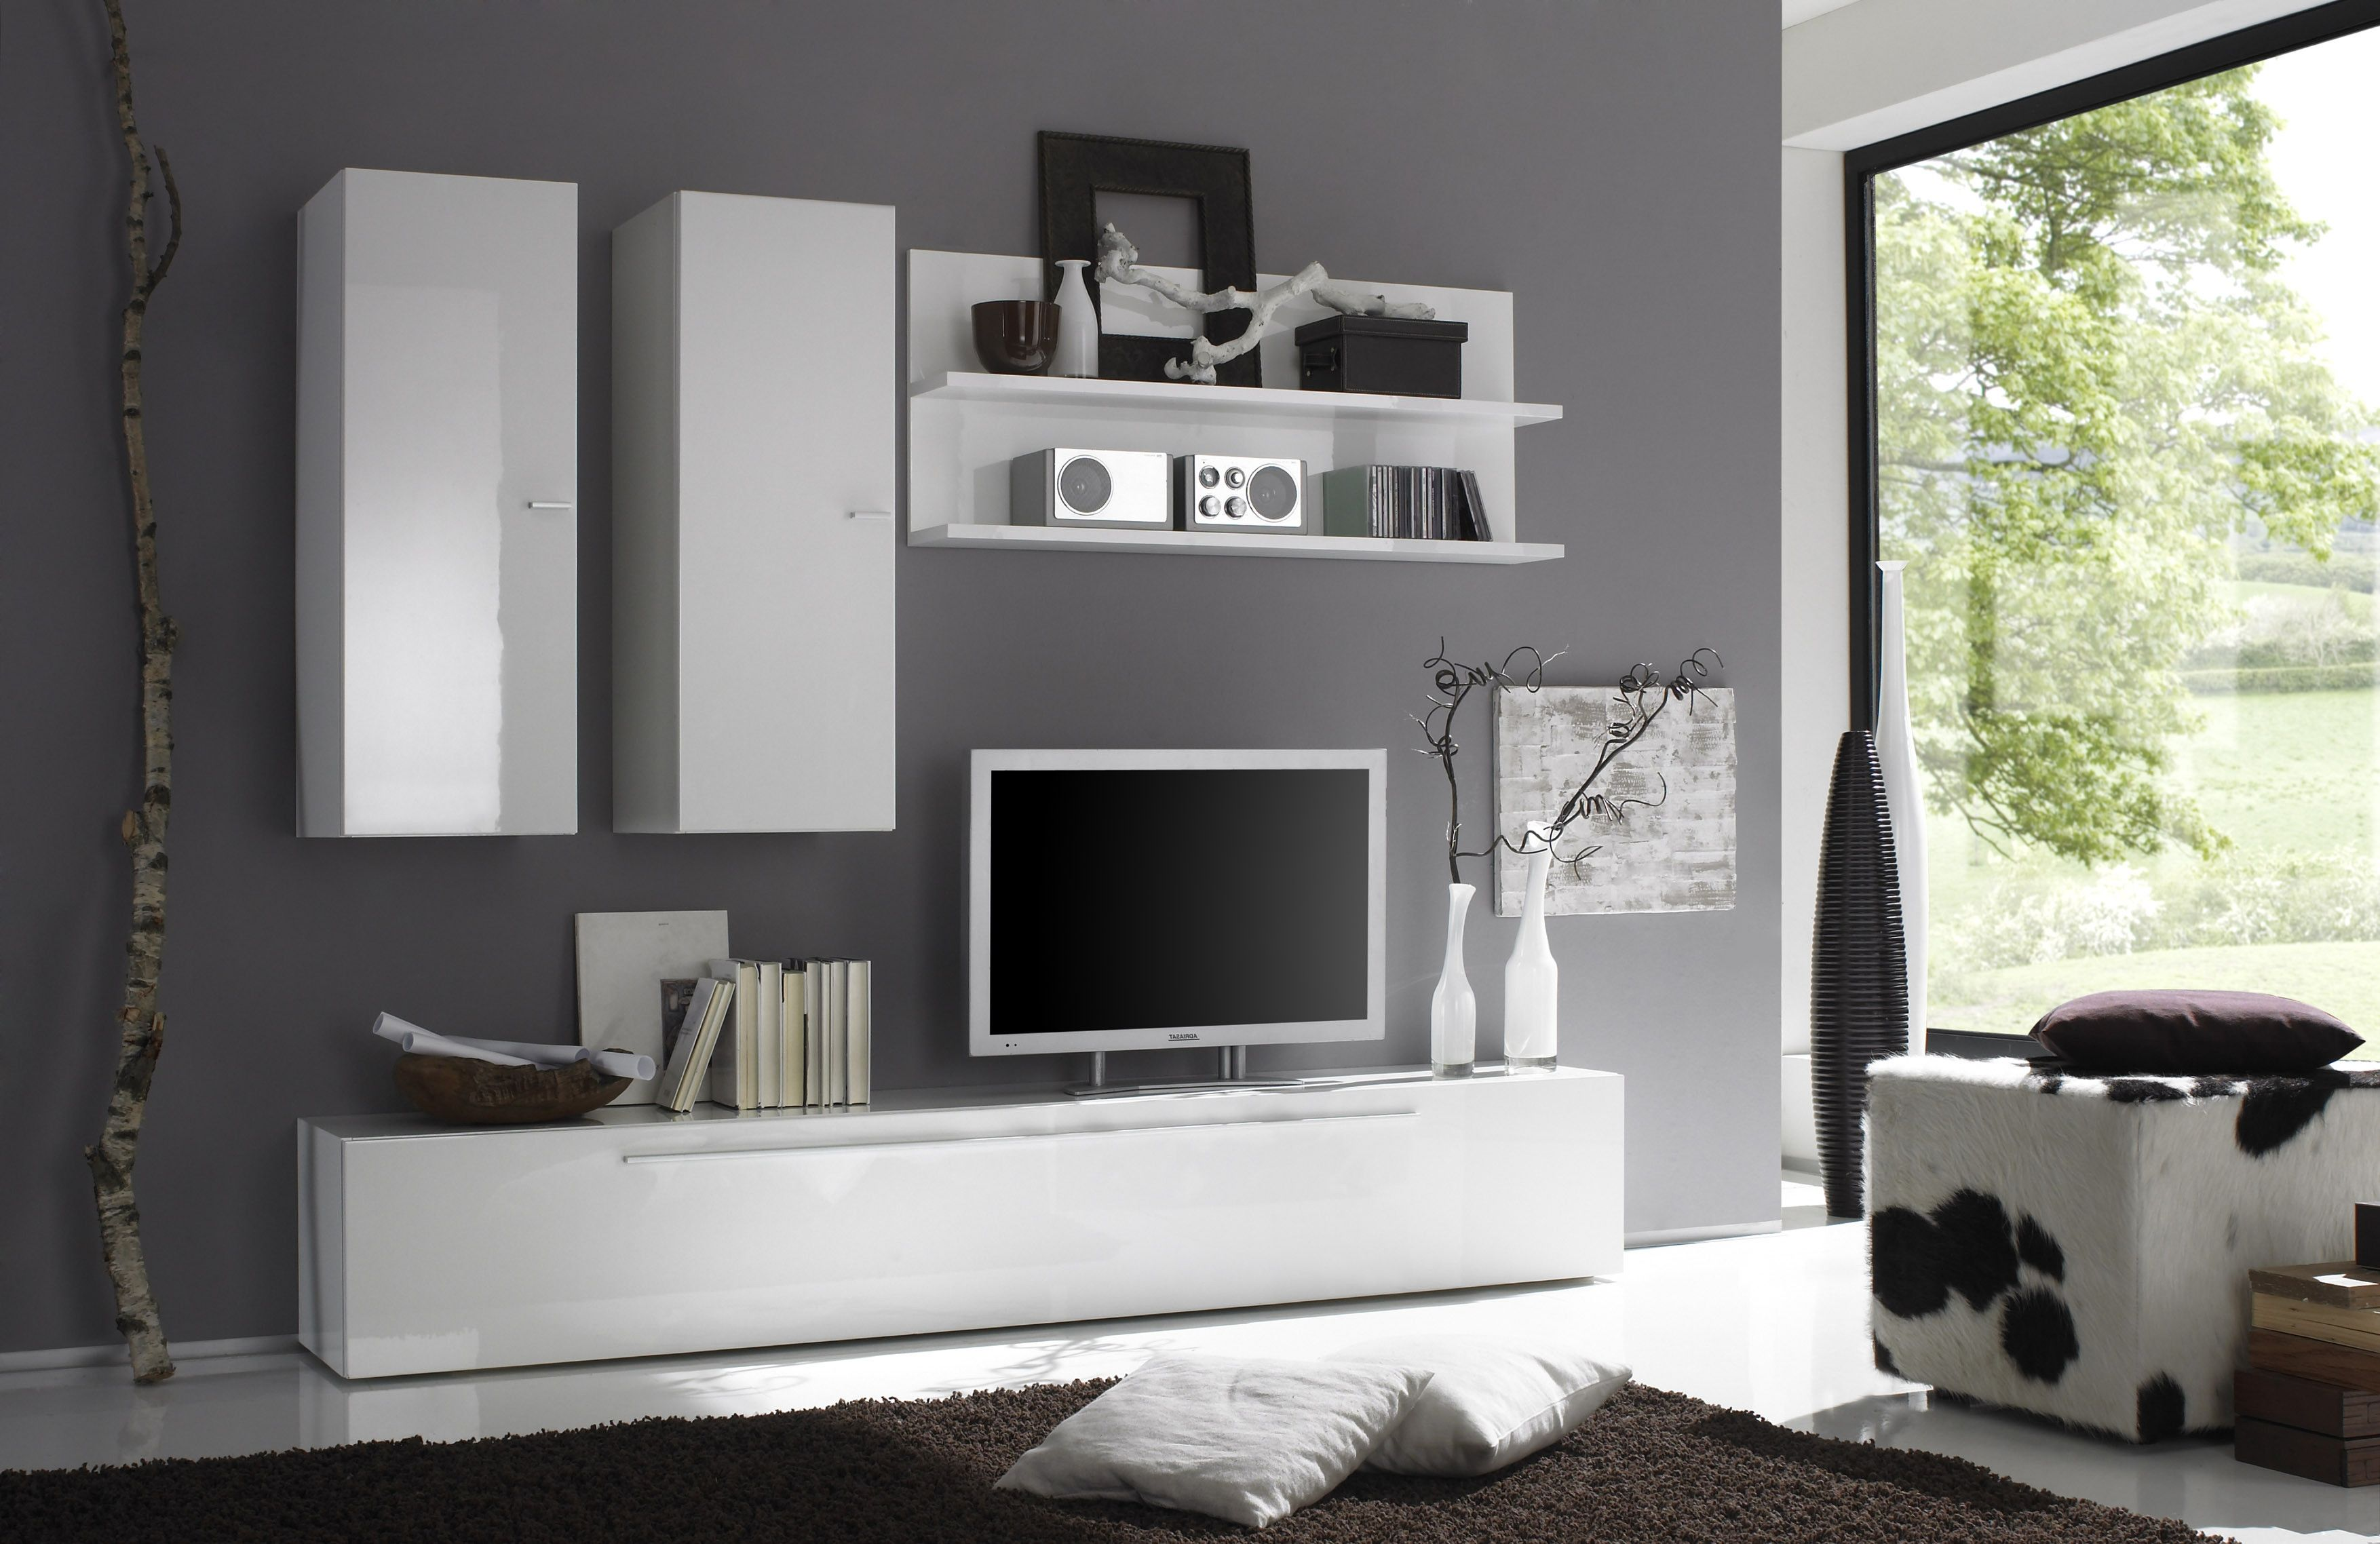 Italian Contemporary Entertainment Center Modern Tv Units Wall Unit Living Room Tv